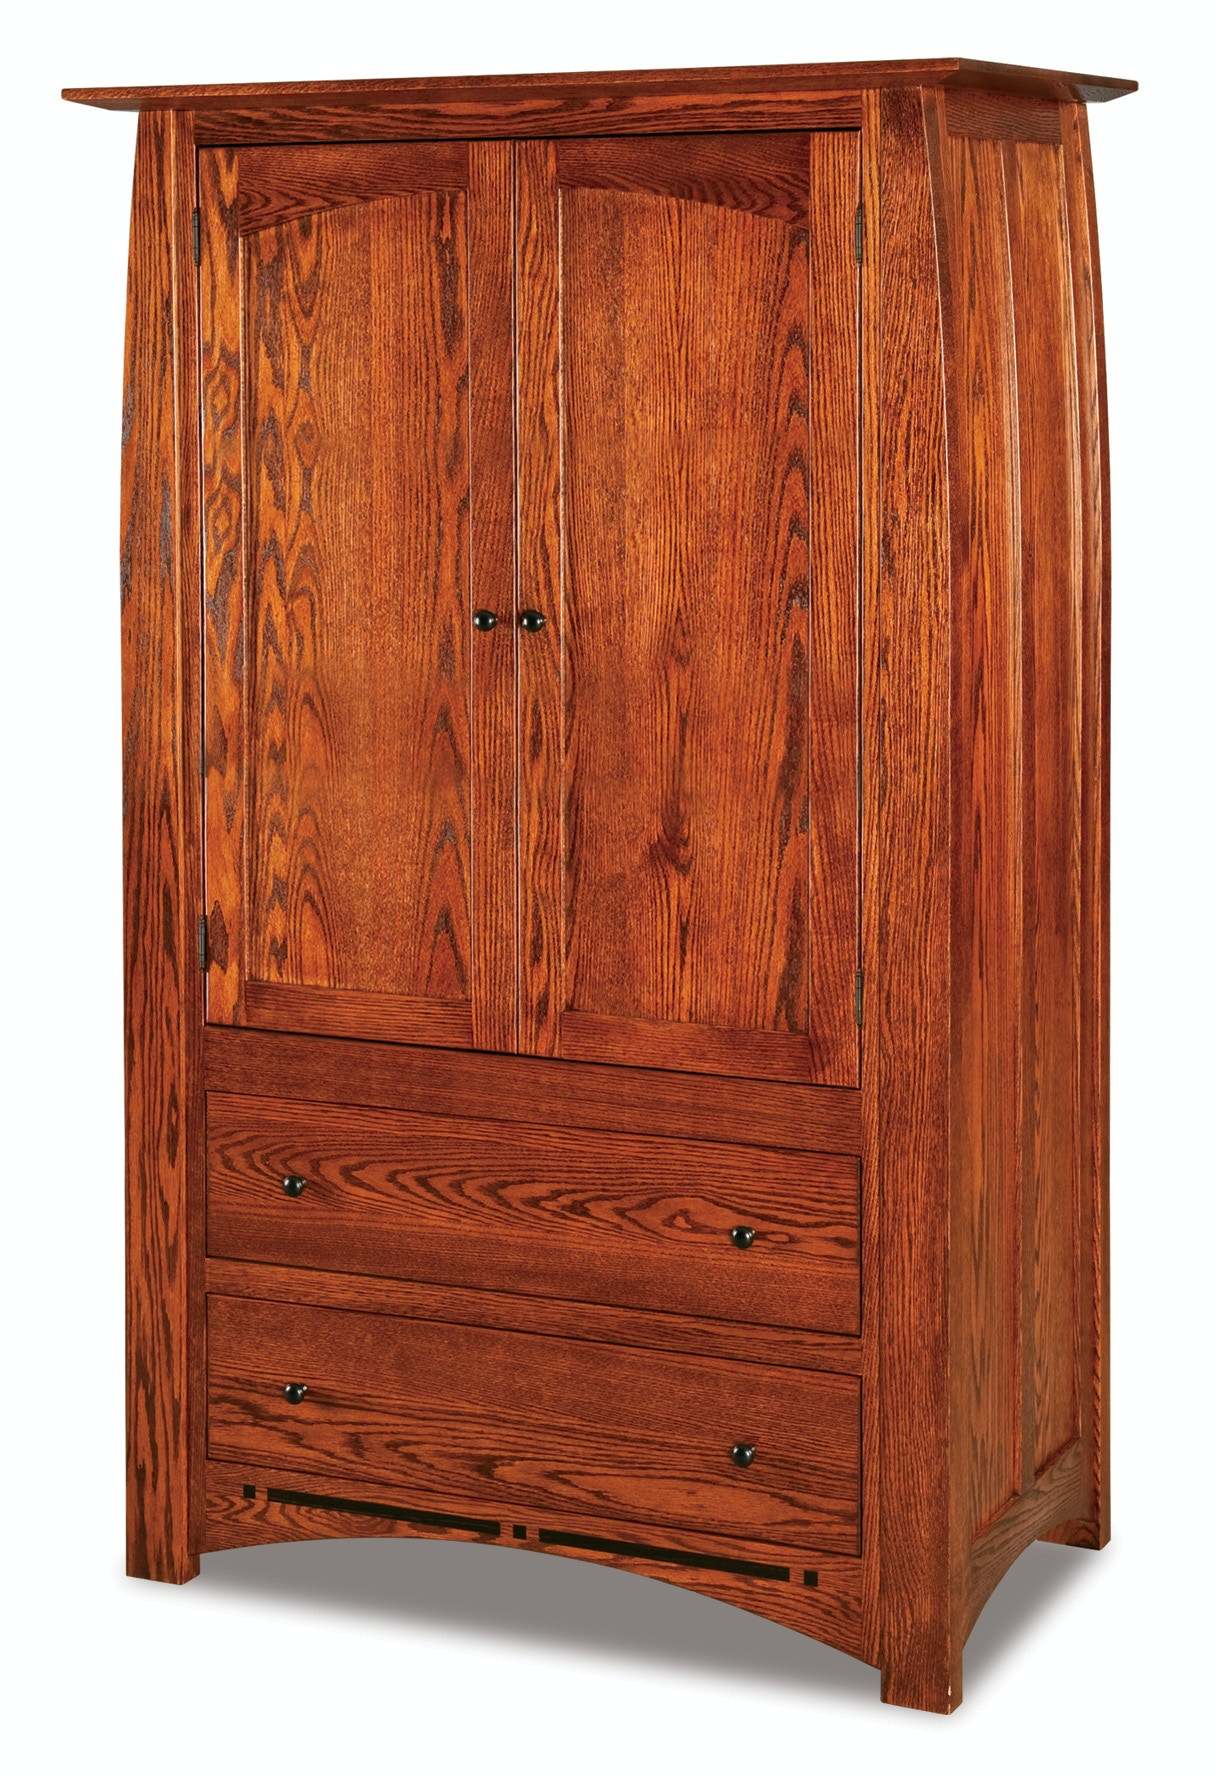 Ju0026R Woodworking Boulder Creek 2 Drawer 2 Door Armoire JRBC 041